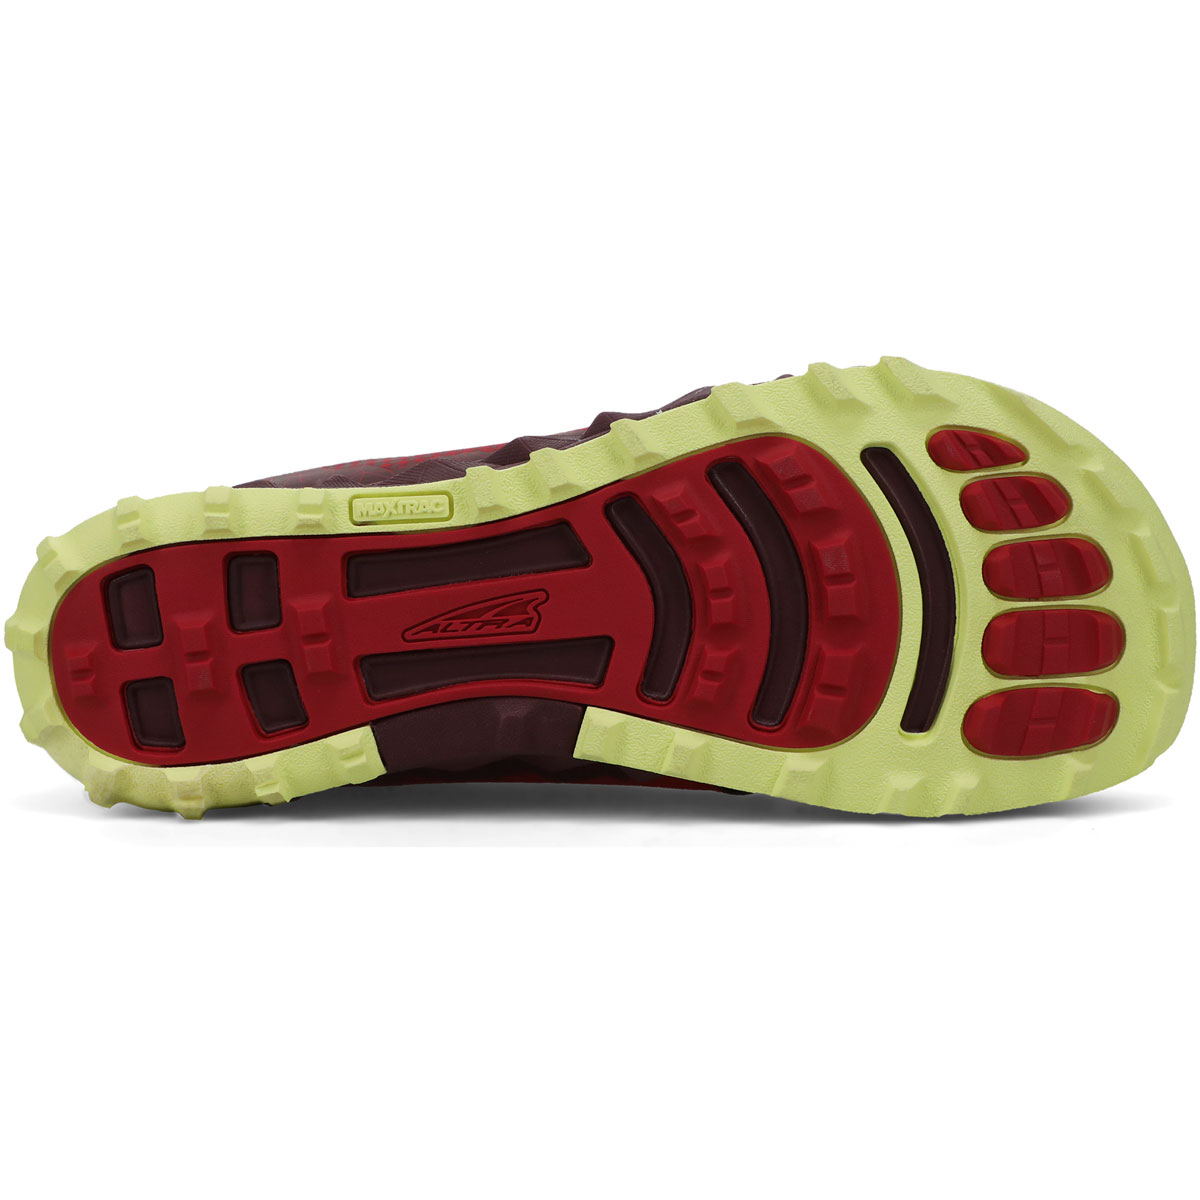 Women's Altra Superior 4.5 Trail Running Shoe - Color: Raspberry - Size: 5.5 - Width: Regular, Raspberry, large, image 3